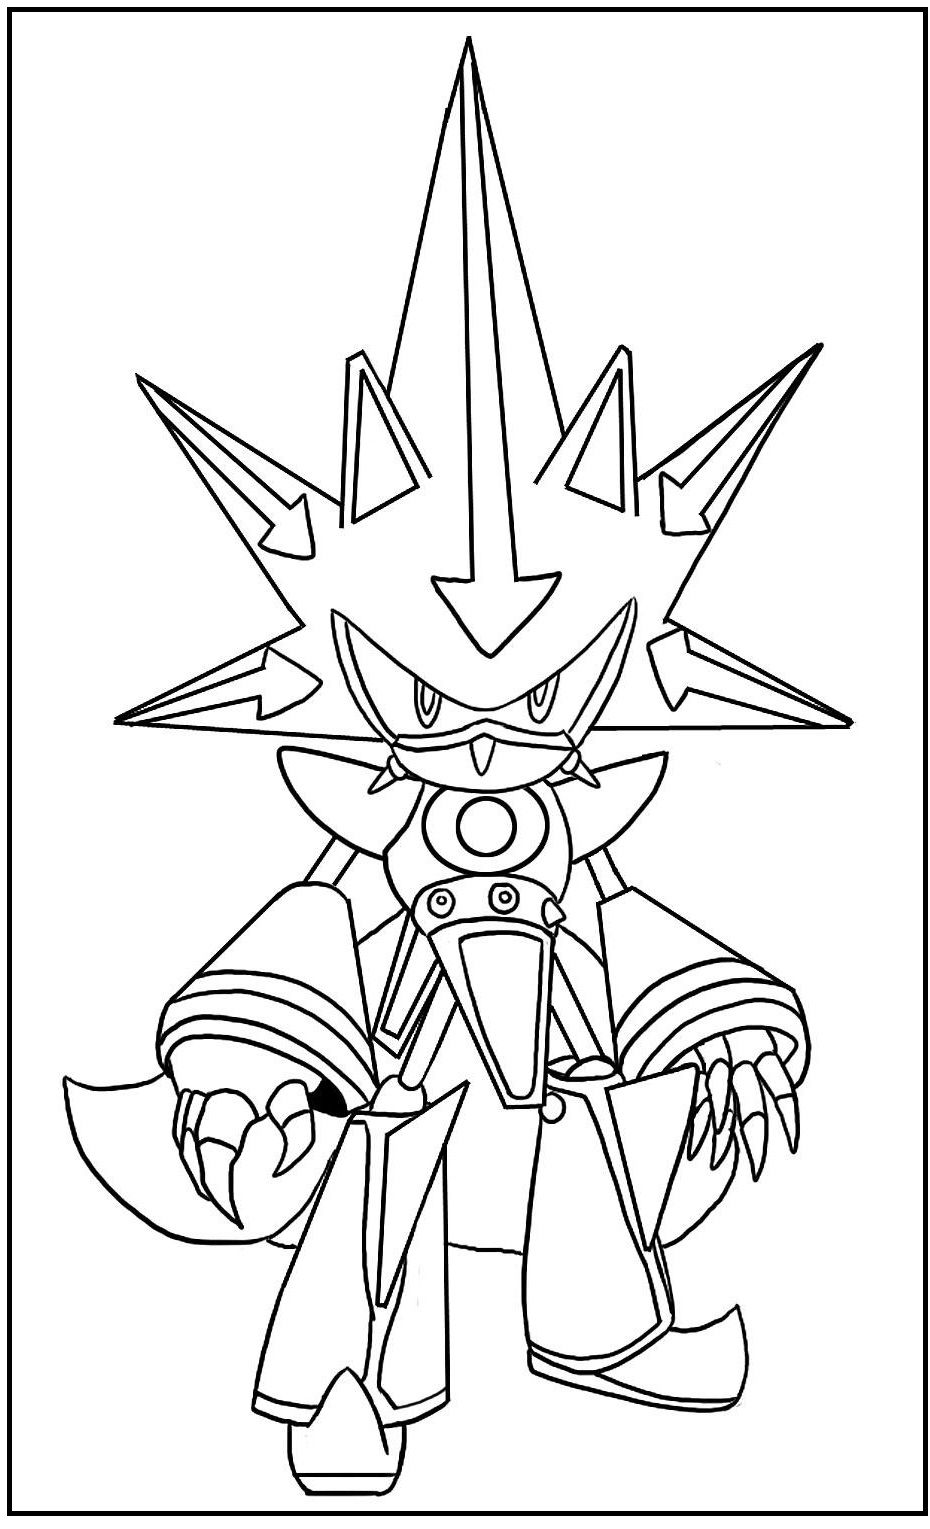 Picture Neo Metal Sonic coloring picture for kids | Sonic The ...